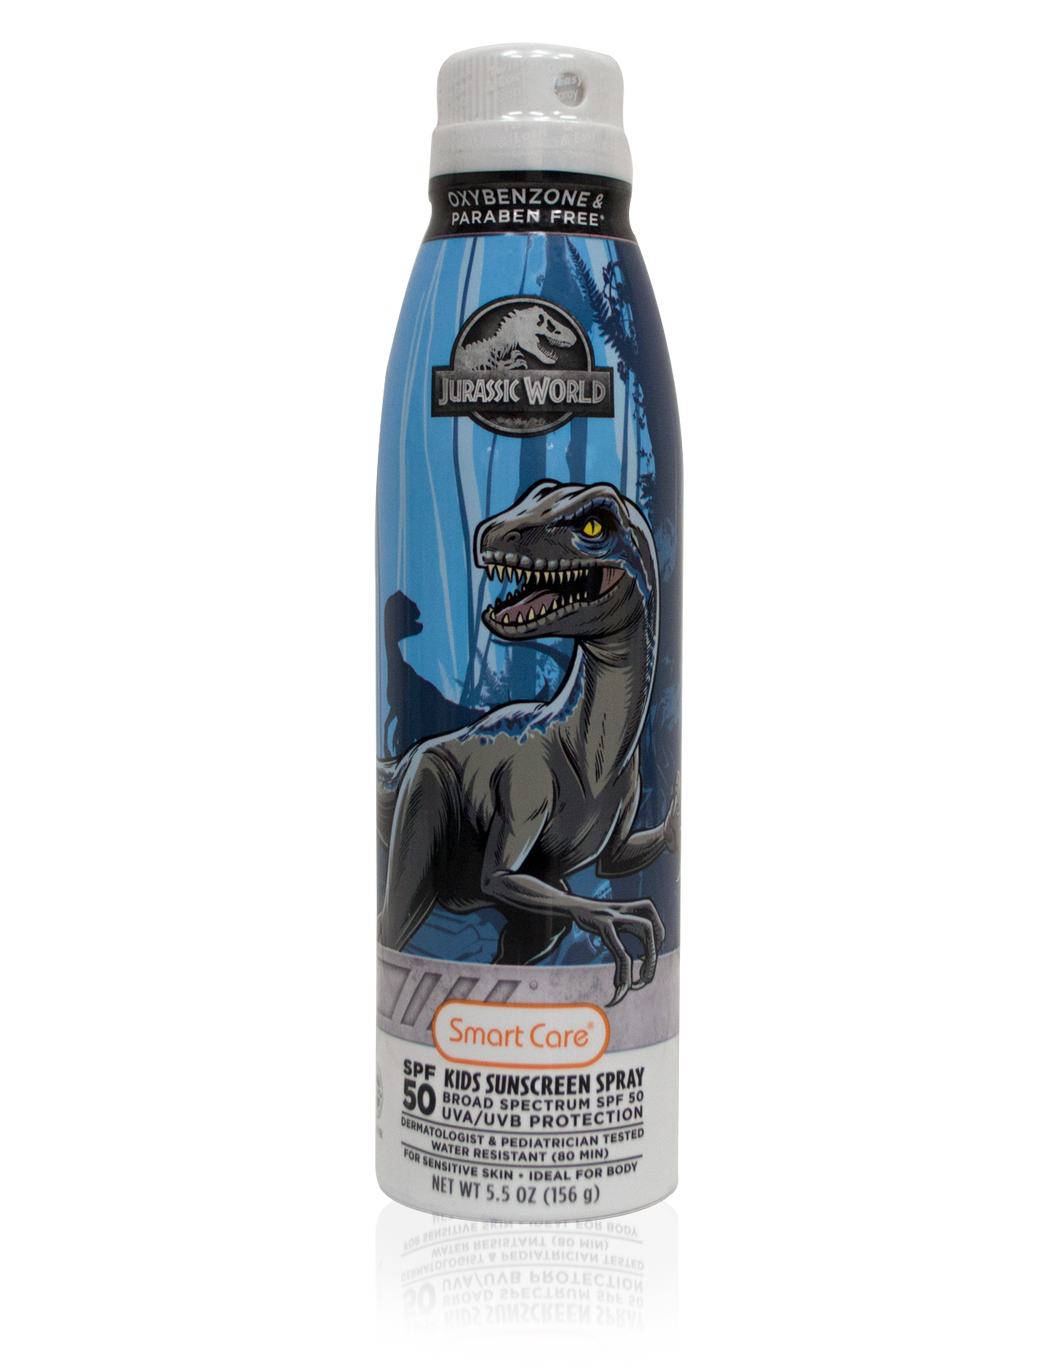 Smart Care Jurassic World Sunscreen Spray (new) - Smart Care